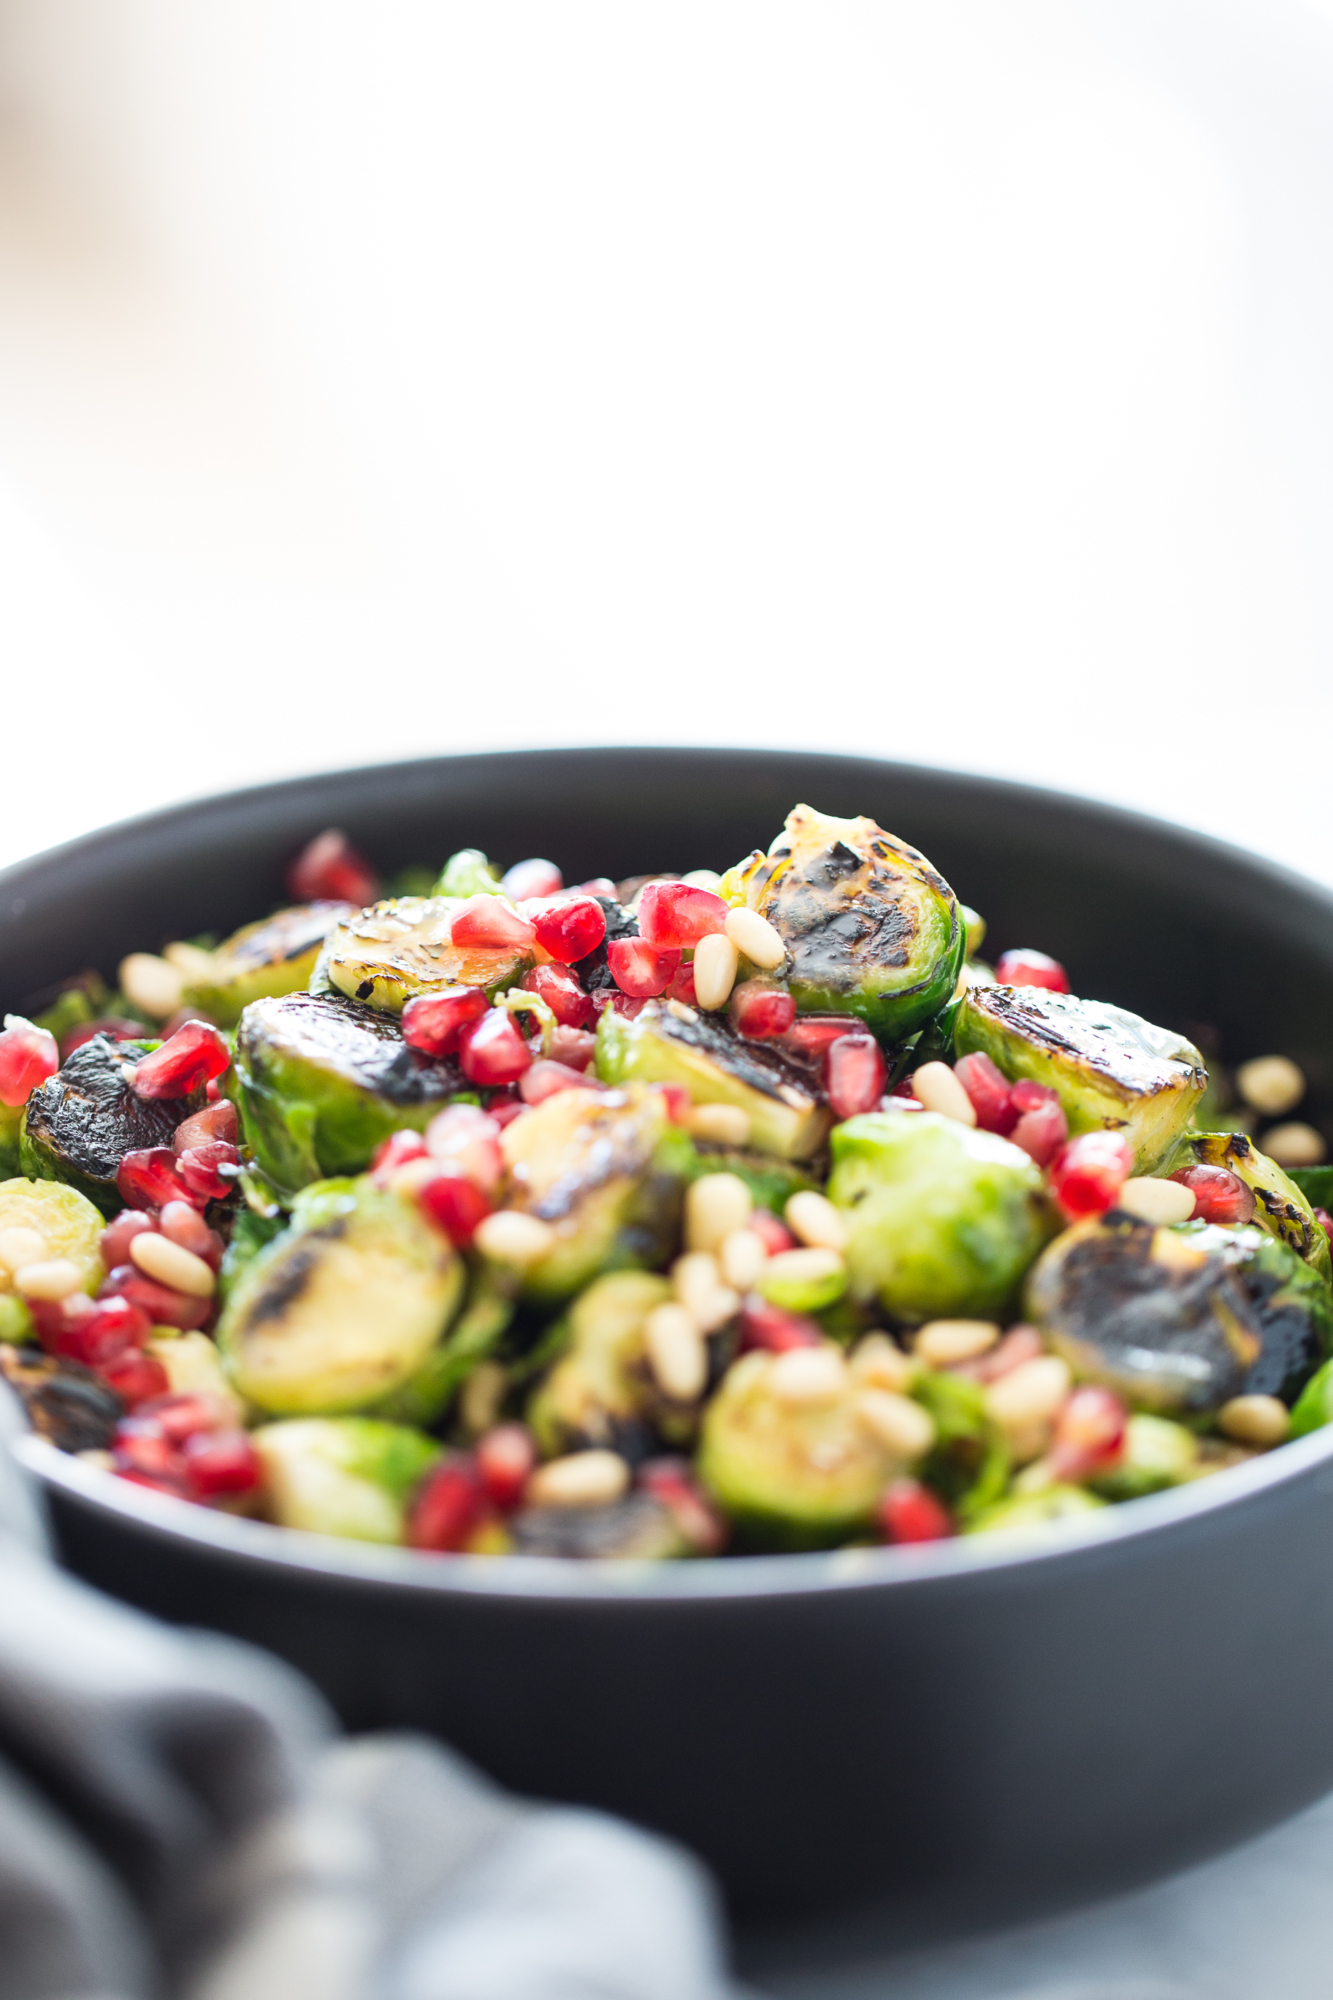 Roasted Brussels sprouts salad with agave Dijon mustard and topped with pine nuts and seeds. It is vegan and perfect for the Holidays.